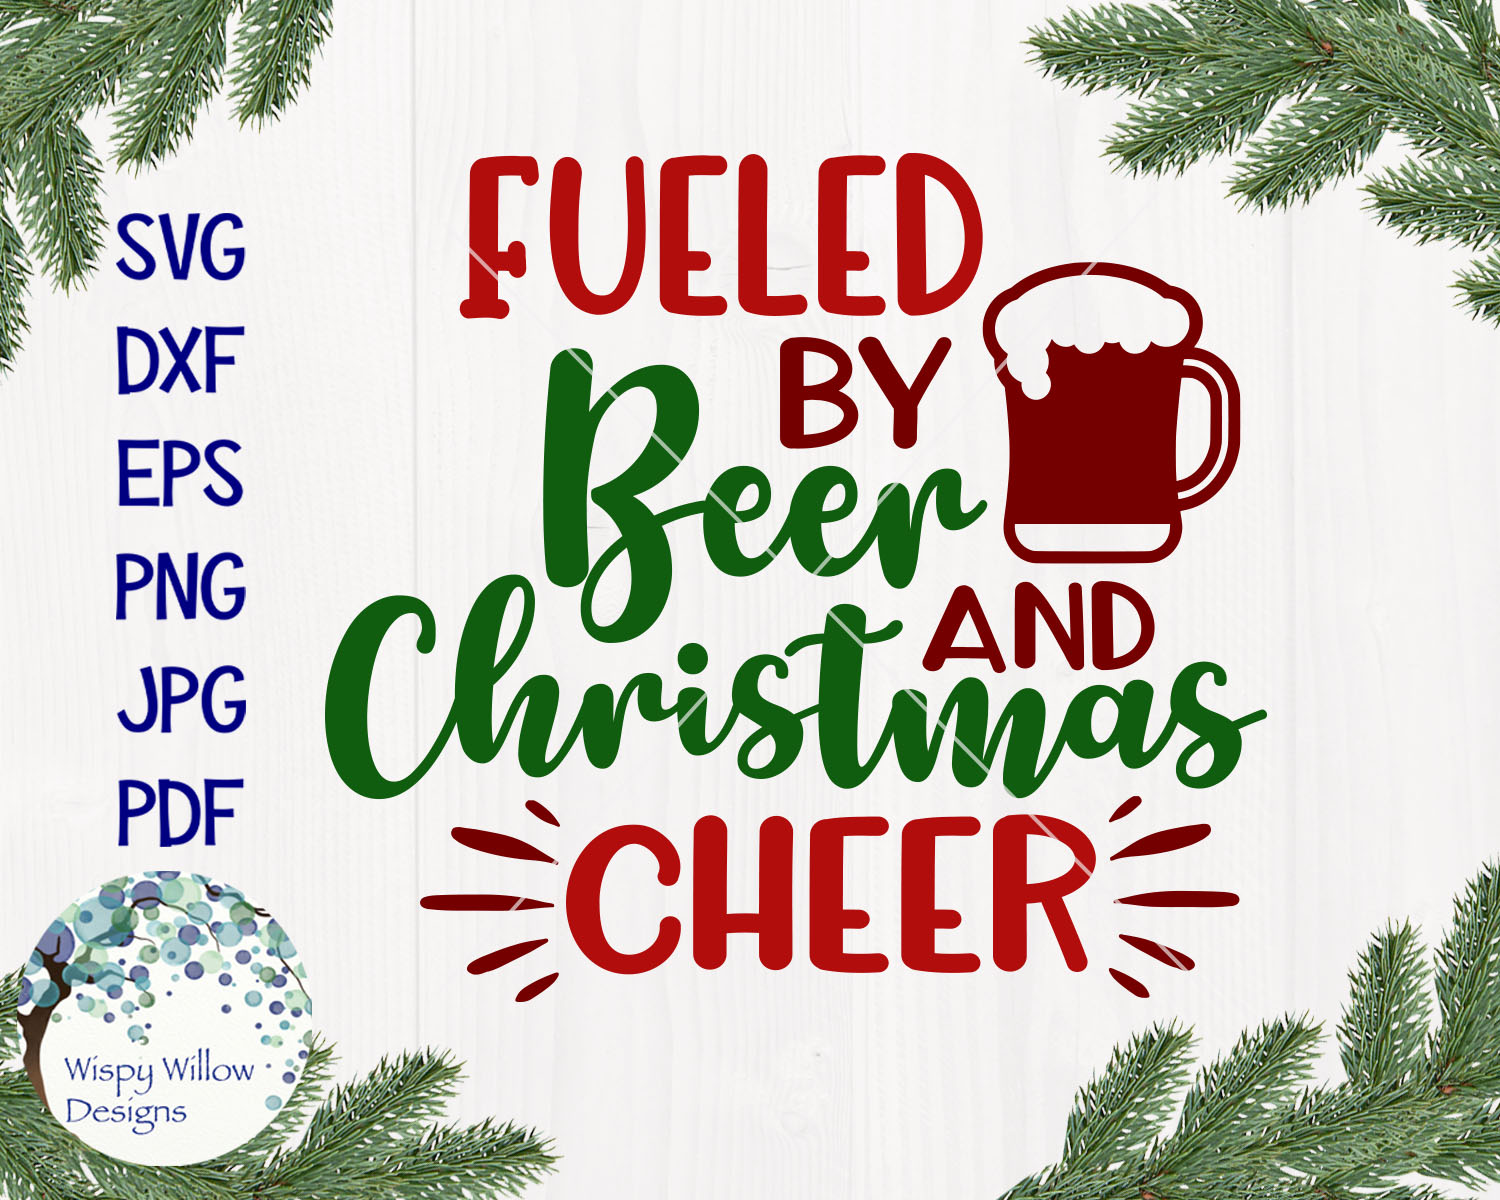 Fueled By Christmas Cheer | Christmas SVG Bundle example image 5